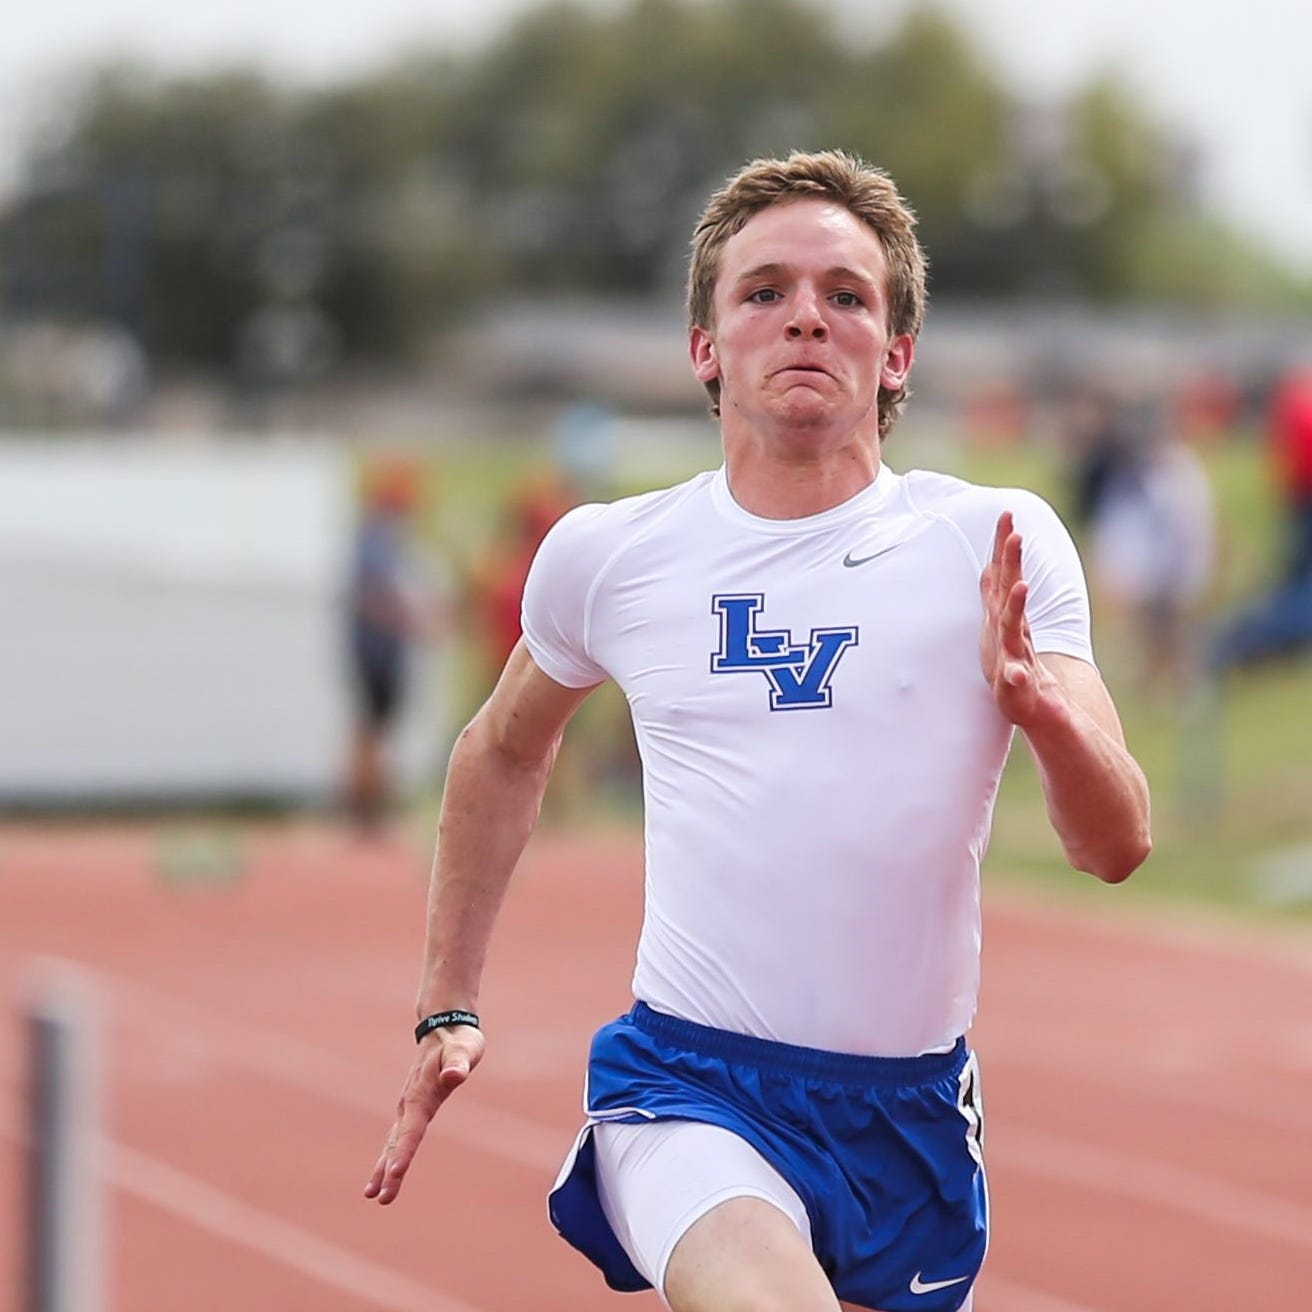 DISTRICT TRACK: Lake View's Peterson qualifies to area in five events